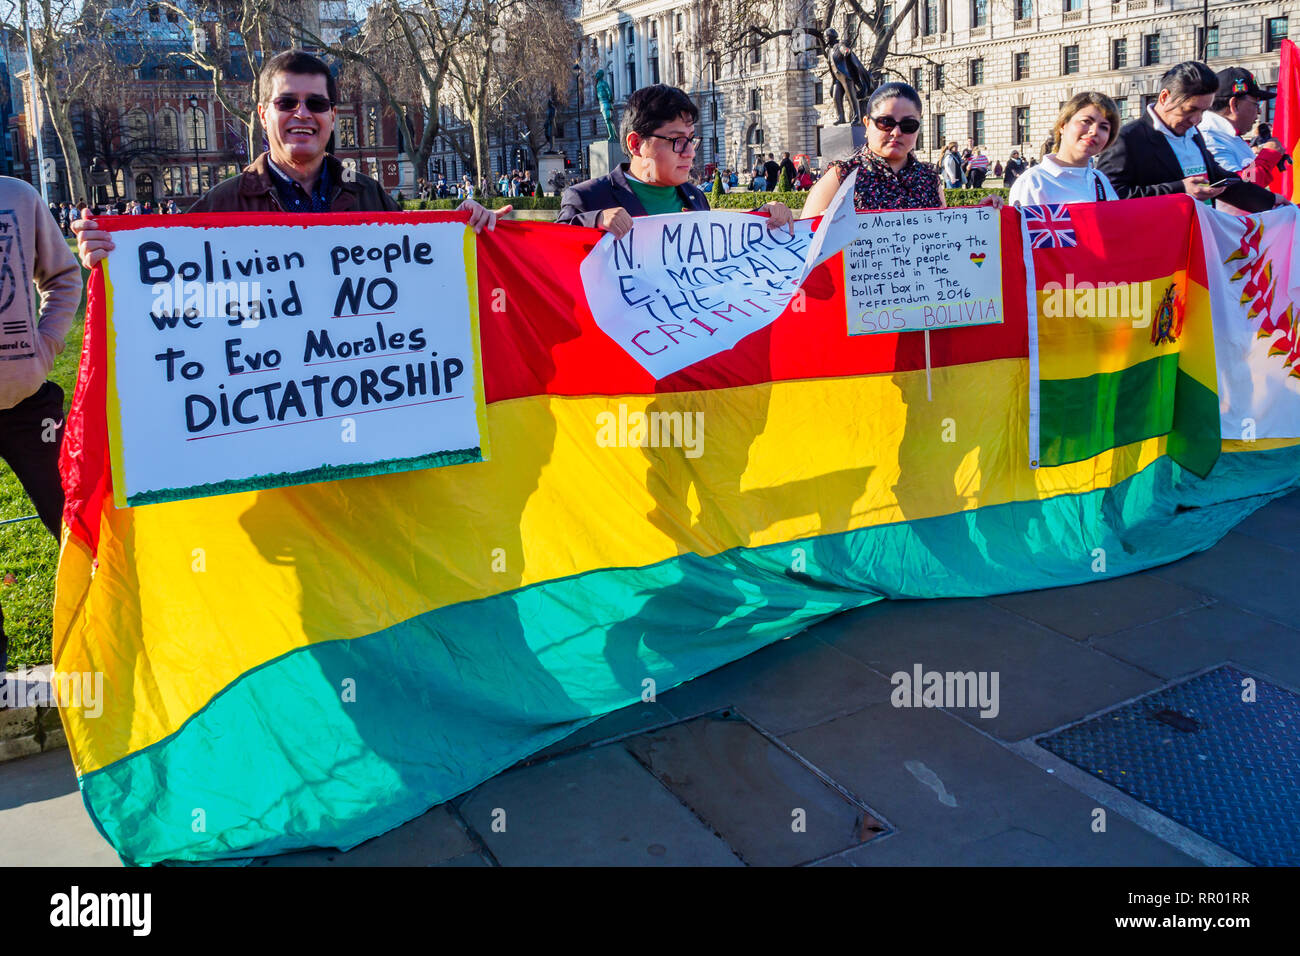 London, UK. 23rd February 2019.  Bolivians protest in Parliament Square against President Evo Morales, saying he is a dictator and accuse him of corruption and interfering with the court system to remain in power. Bolivia's Electoral Tribunal ruled in December that he could stand for a fourth term in office in the November 2019 elections, despite a referendum on 21st Feb 2016. which narrowly rejected changing the 2009 constitution to allow the President to serve more than two consecutive terms. Peter Marshall/Alamy Live News Stock Photo